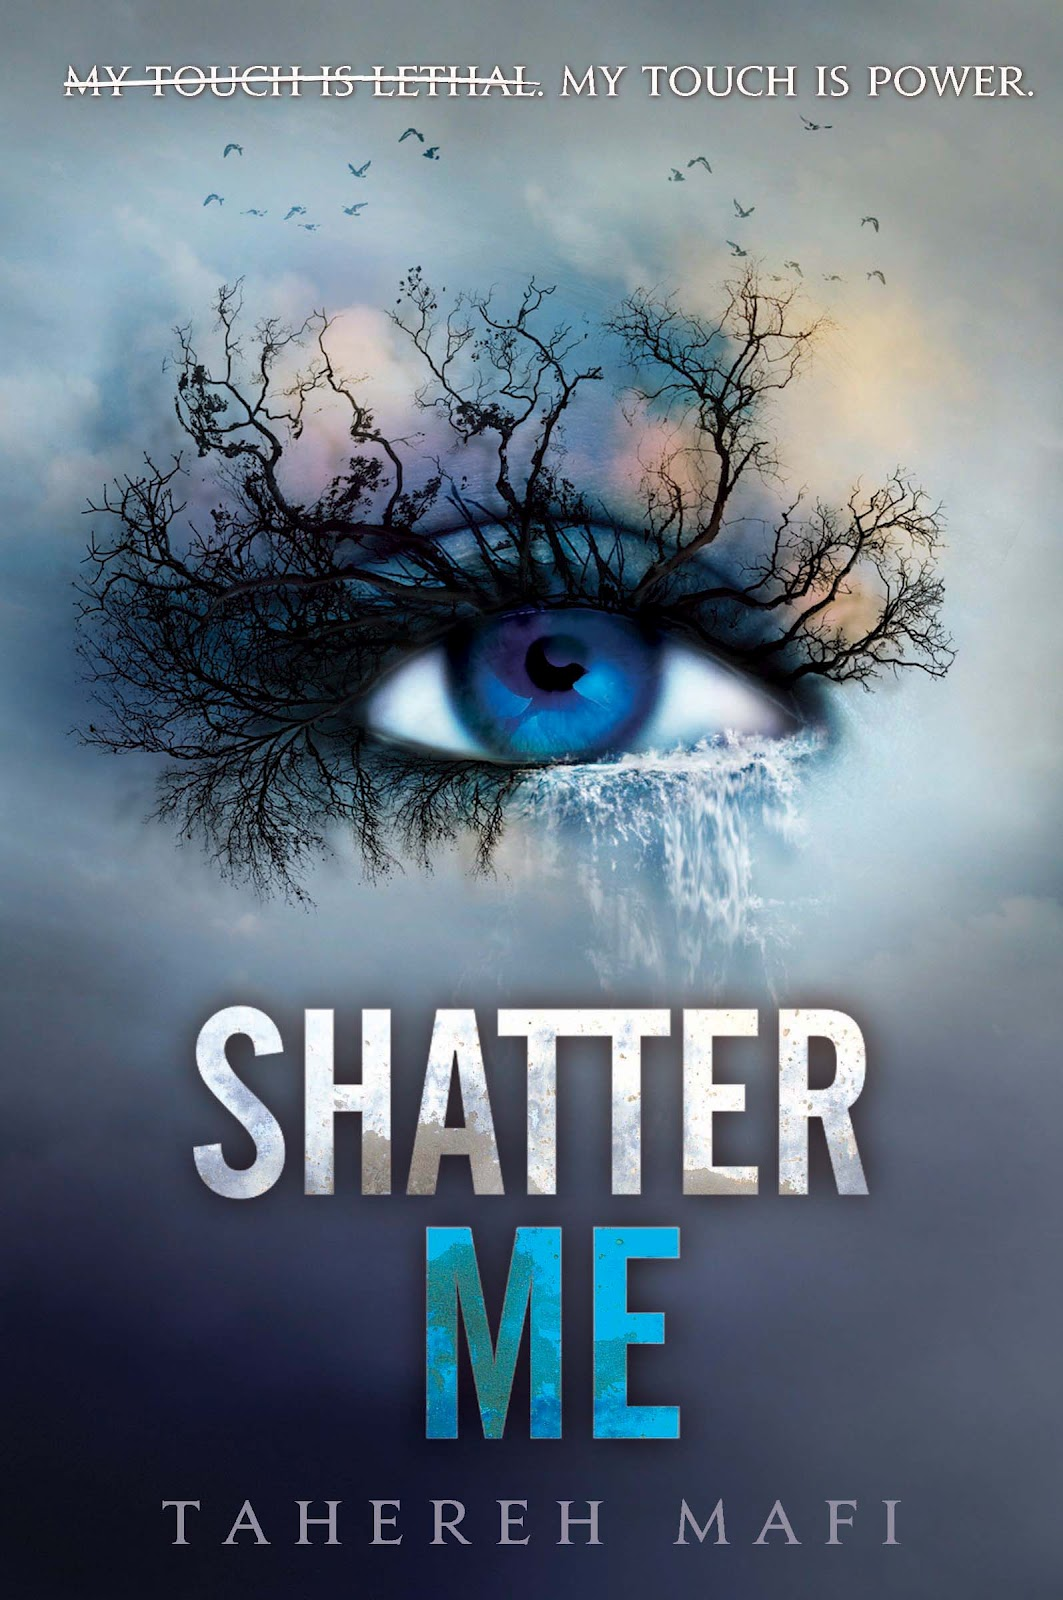 http://nothingbutn9erz.blogspot.co.at/2014/08/shatter-me-ich-fuerchte-mich-nicht-tahereh-mafi.html